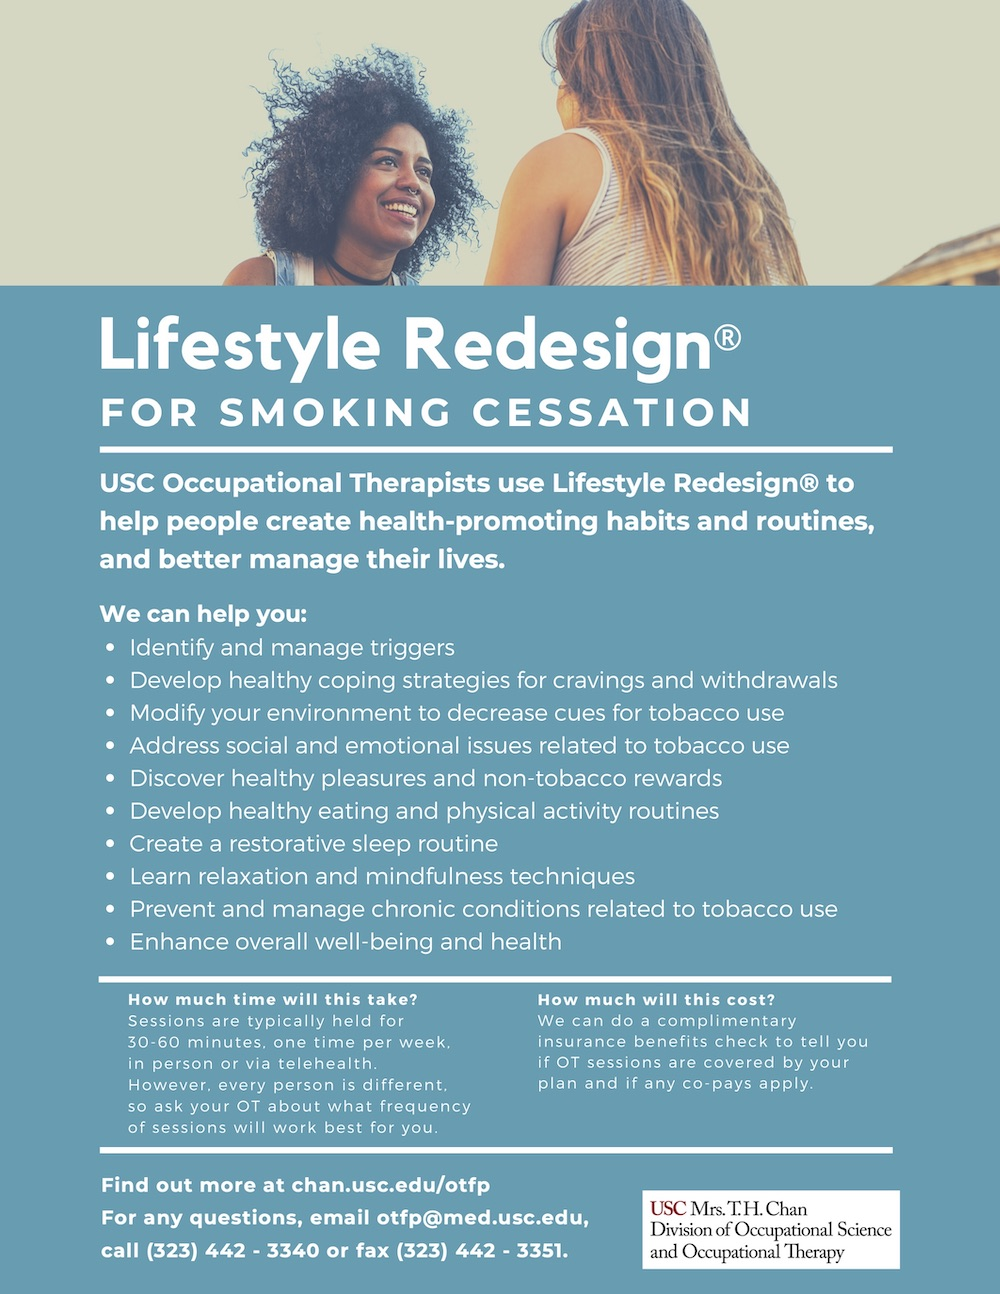 Lifestyle Redesign for Smoking Cessation